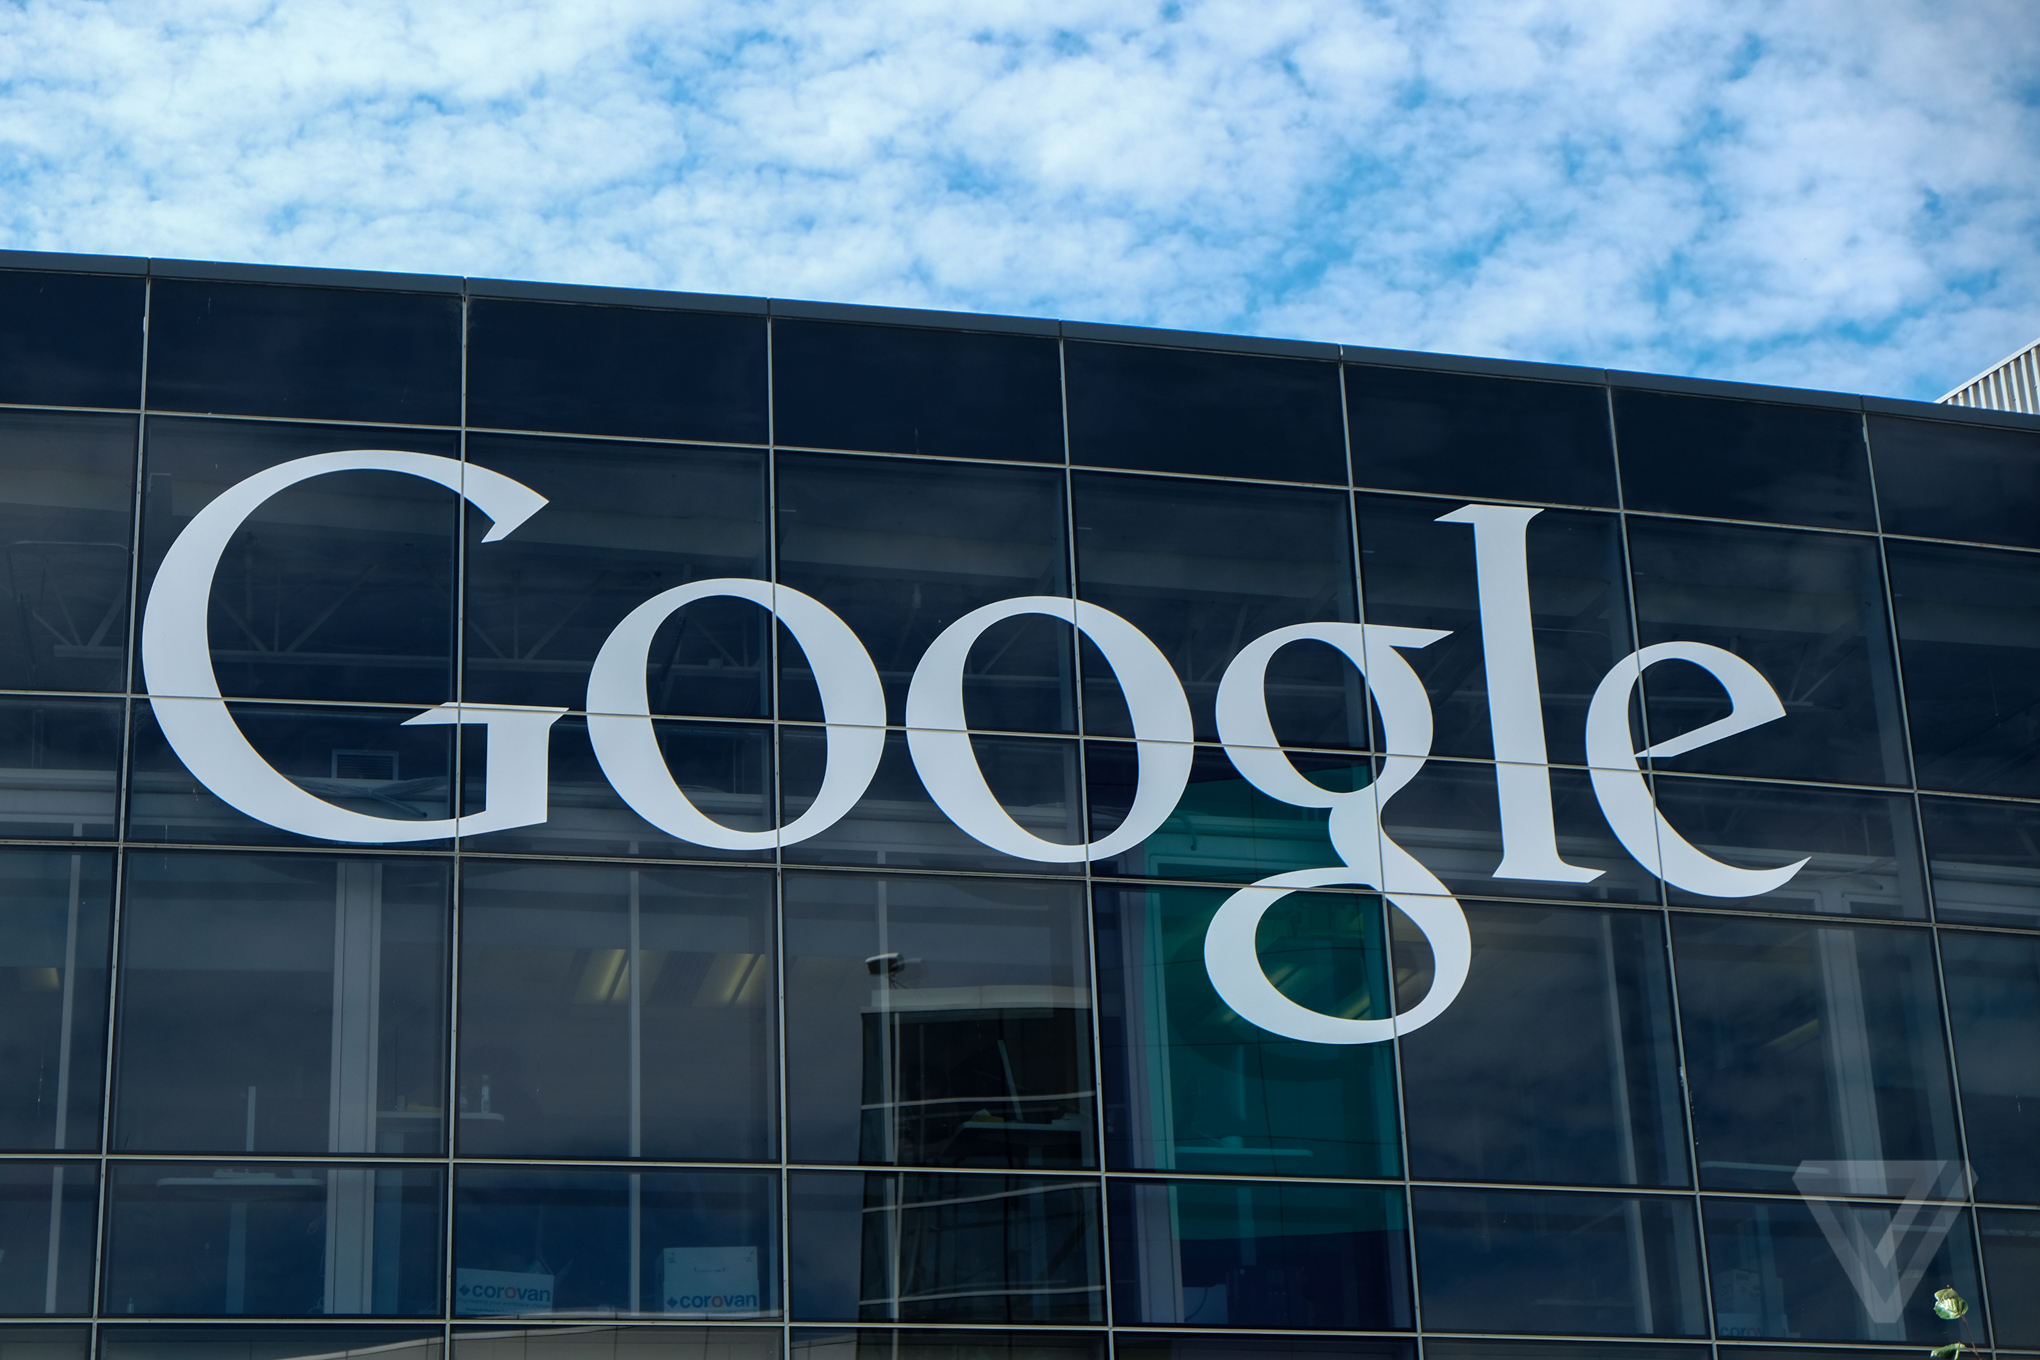 Google is reportedly hiding behind shell companies to scoop up tax breaks and land